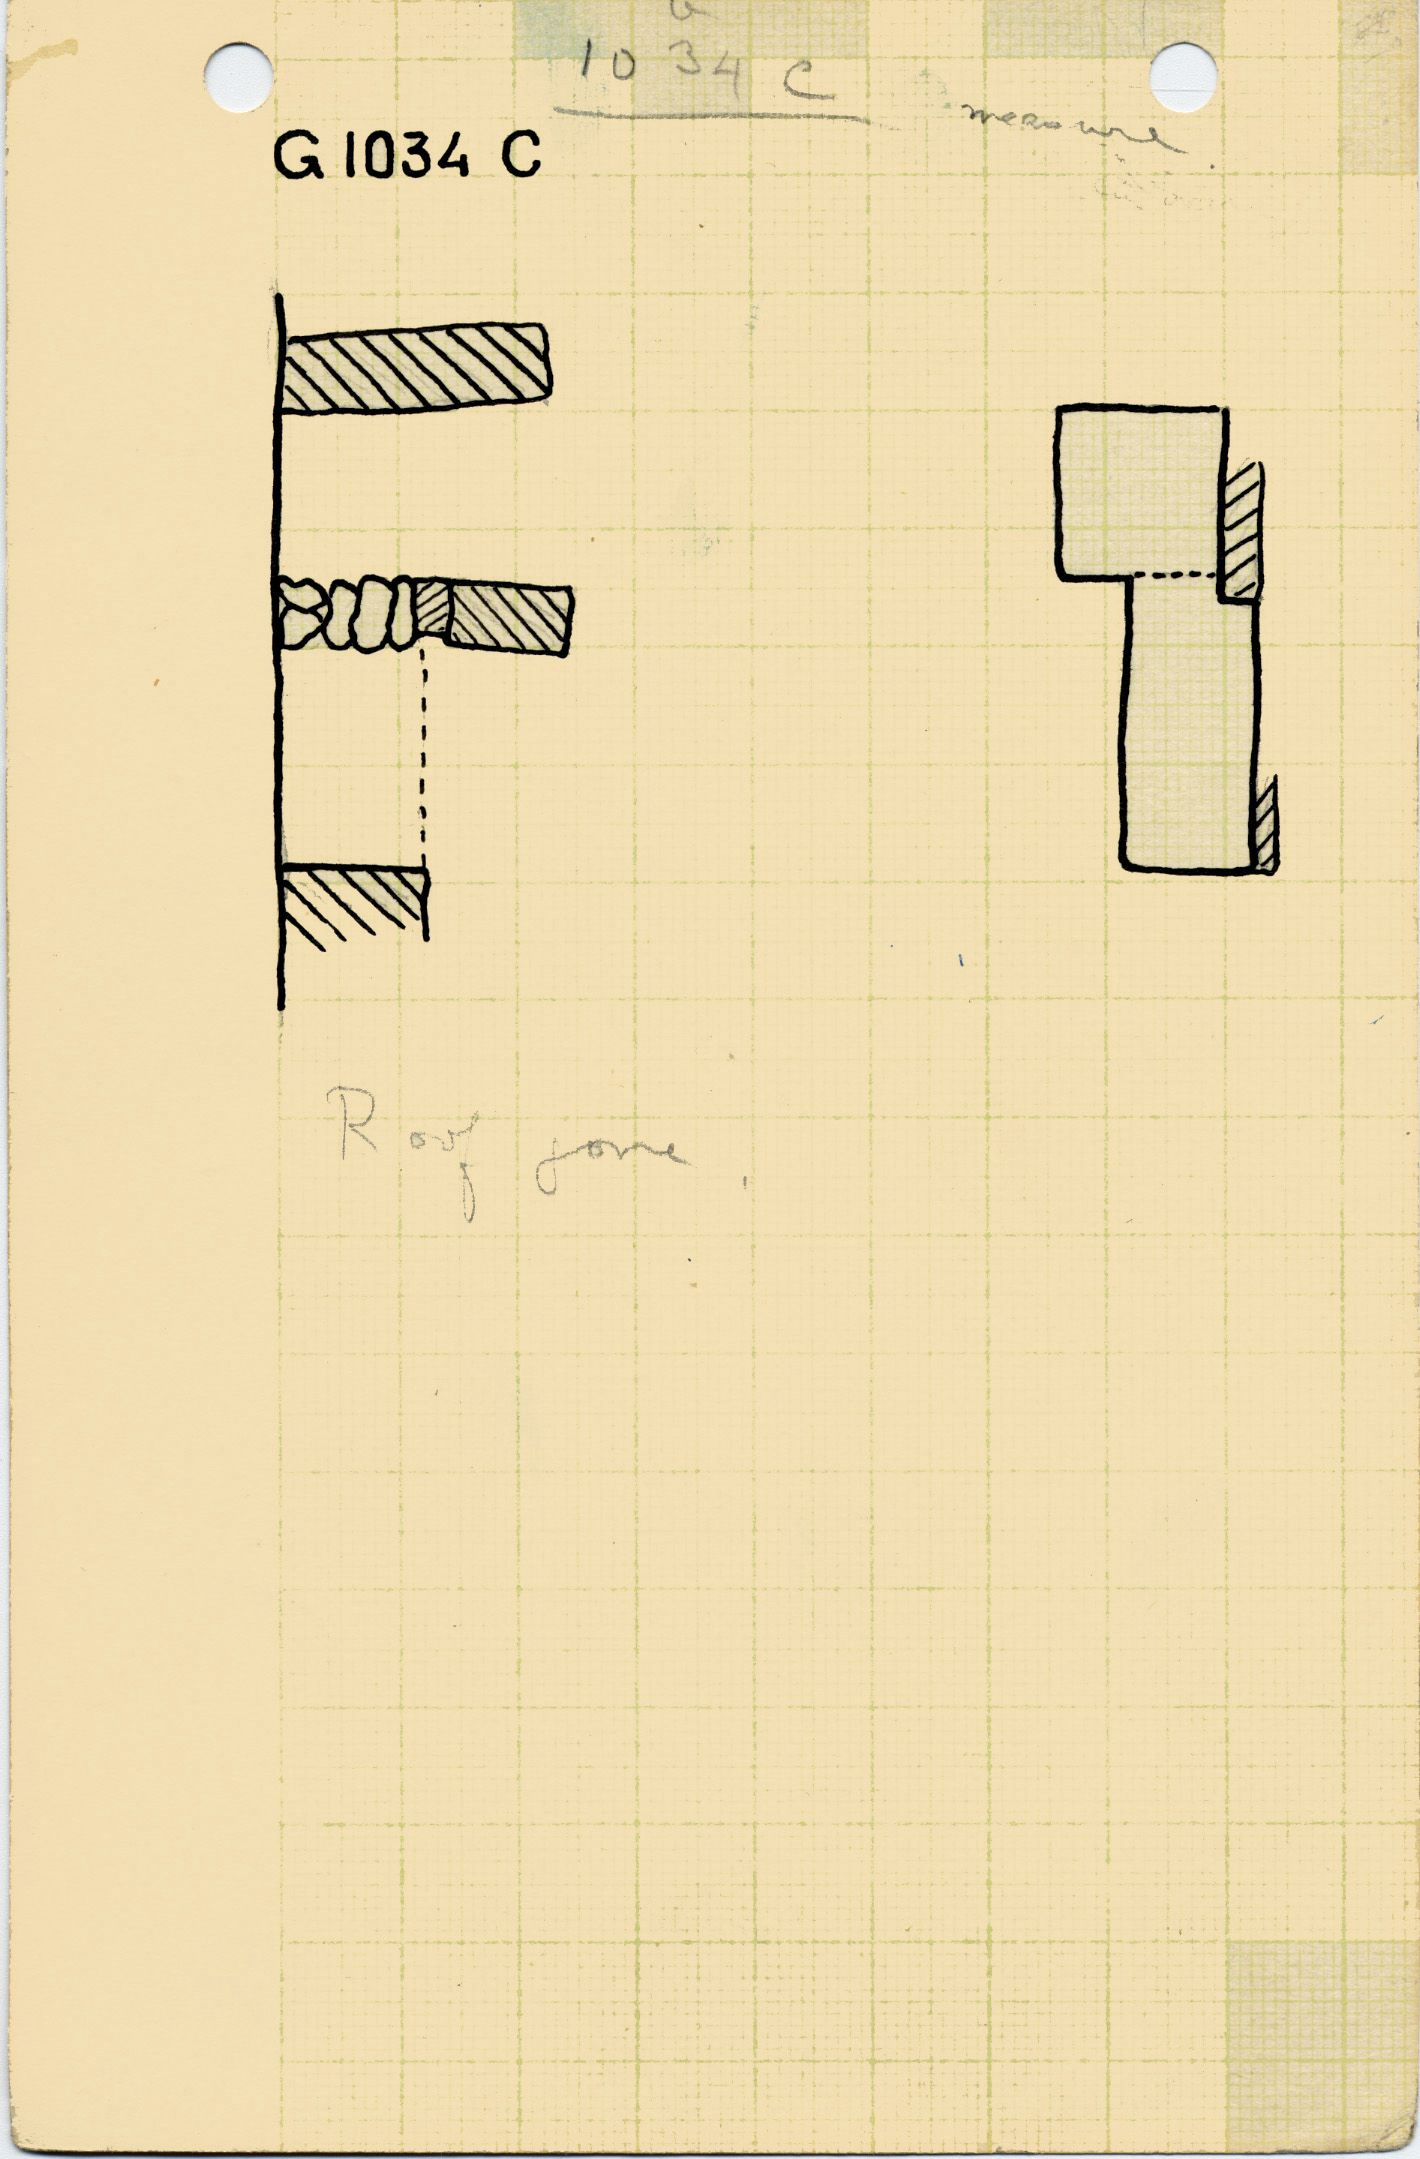 Maps and plans: G 1034, Shaft C